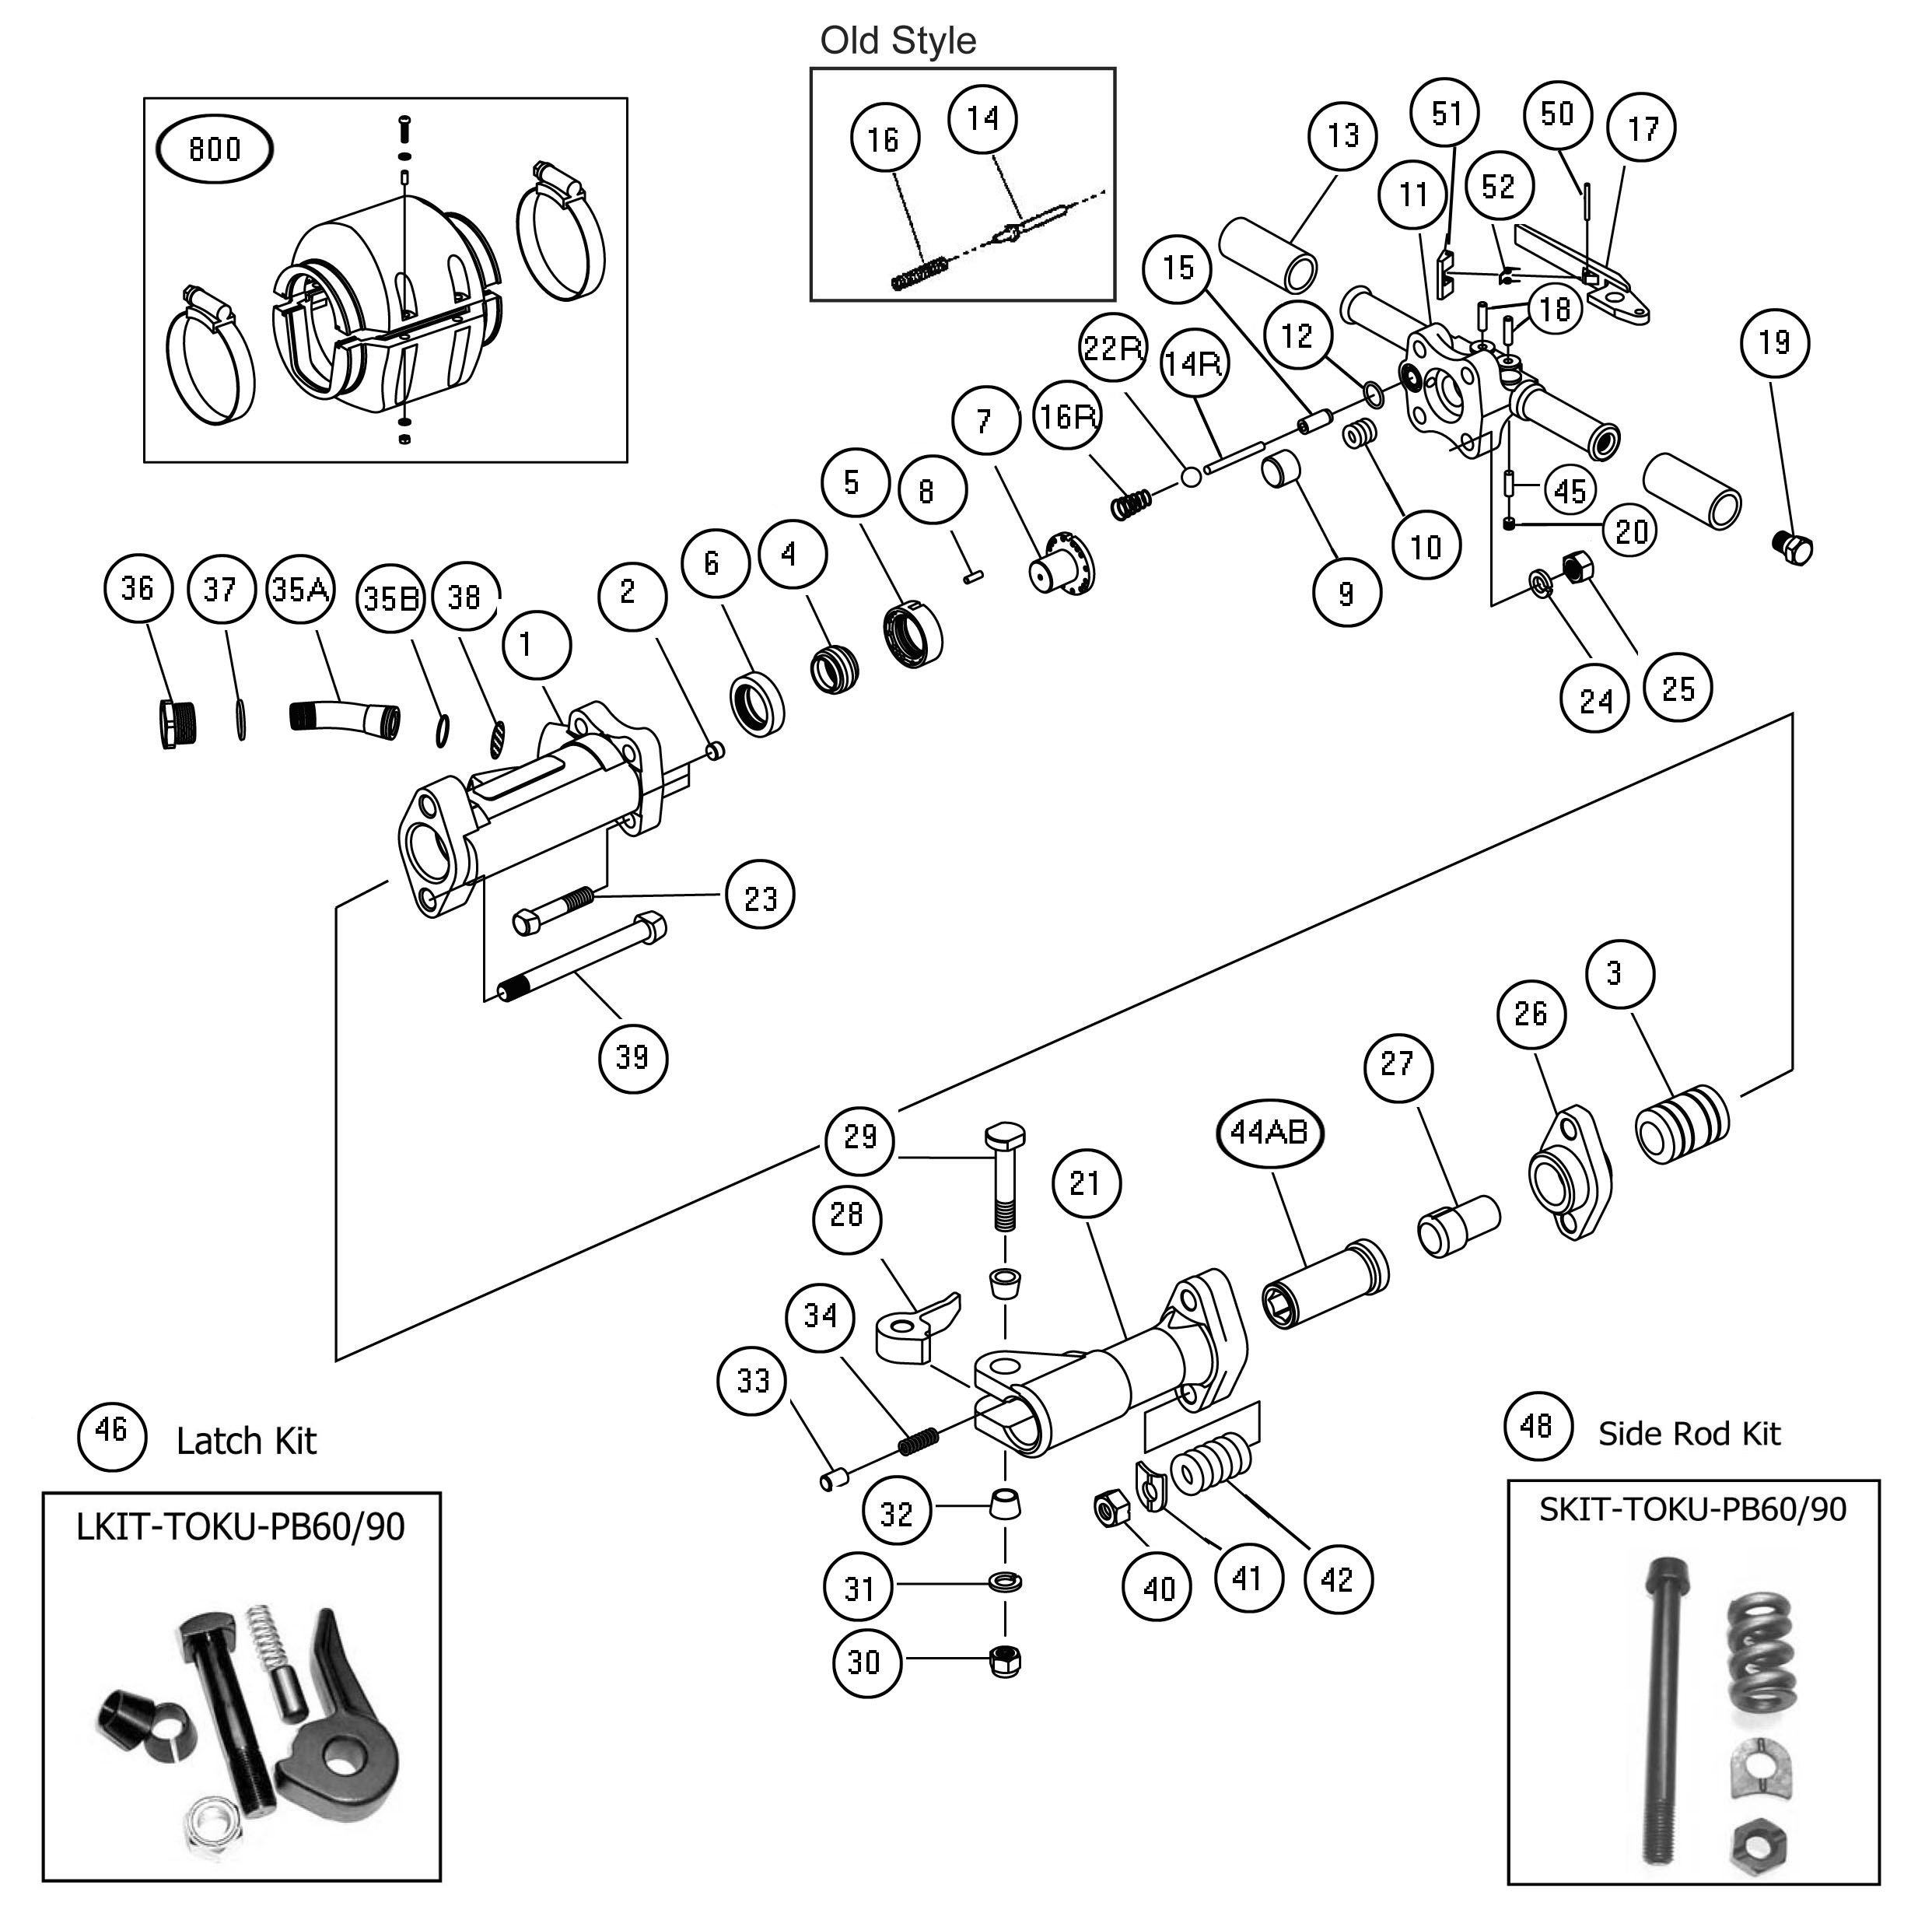 Ditch Witch Parts Diagram